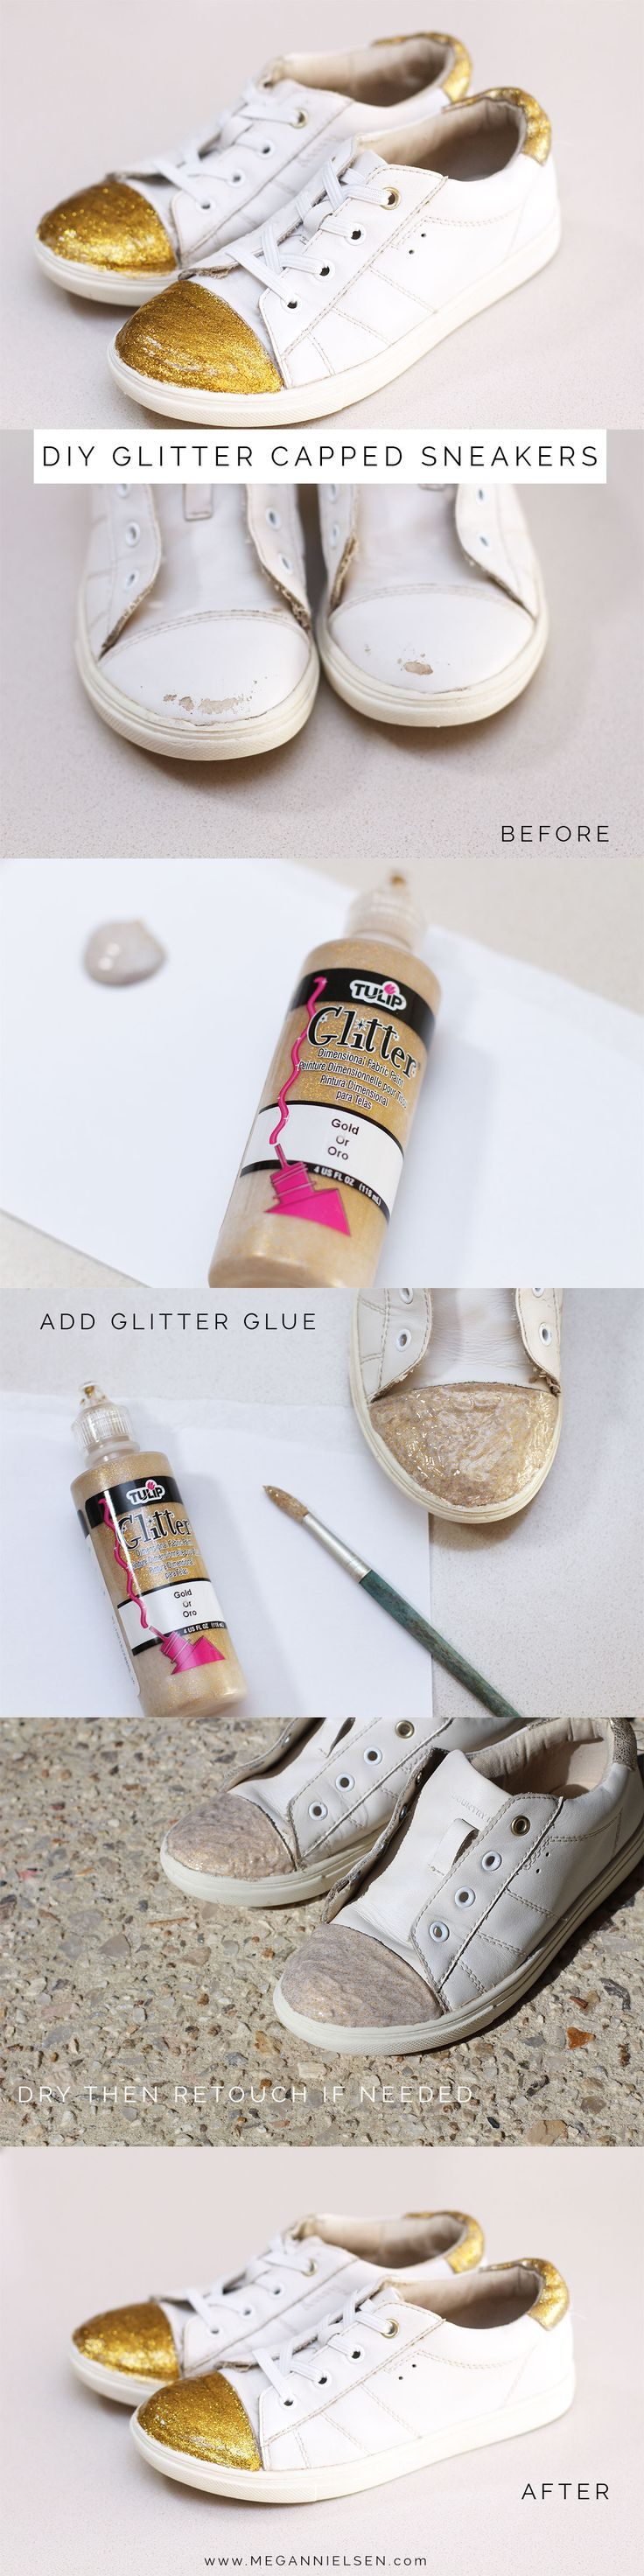 DIY Glitter capped sneakers http://blog.megannielsen.com/2016/08/glitter-sneakers/?utm_campaign=coschedule&utm_source=pinterest&utm_medium=Megan%20Nielsen%20Patterns&utm_content=DIY%20Glitter%20capped%20sneakers